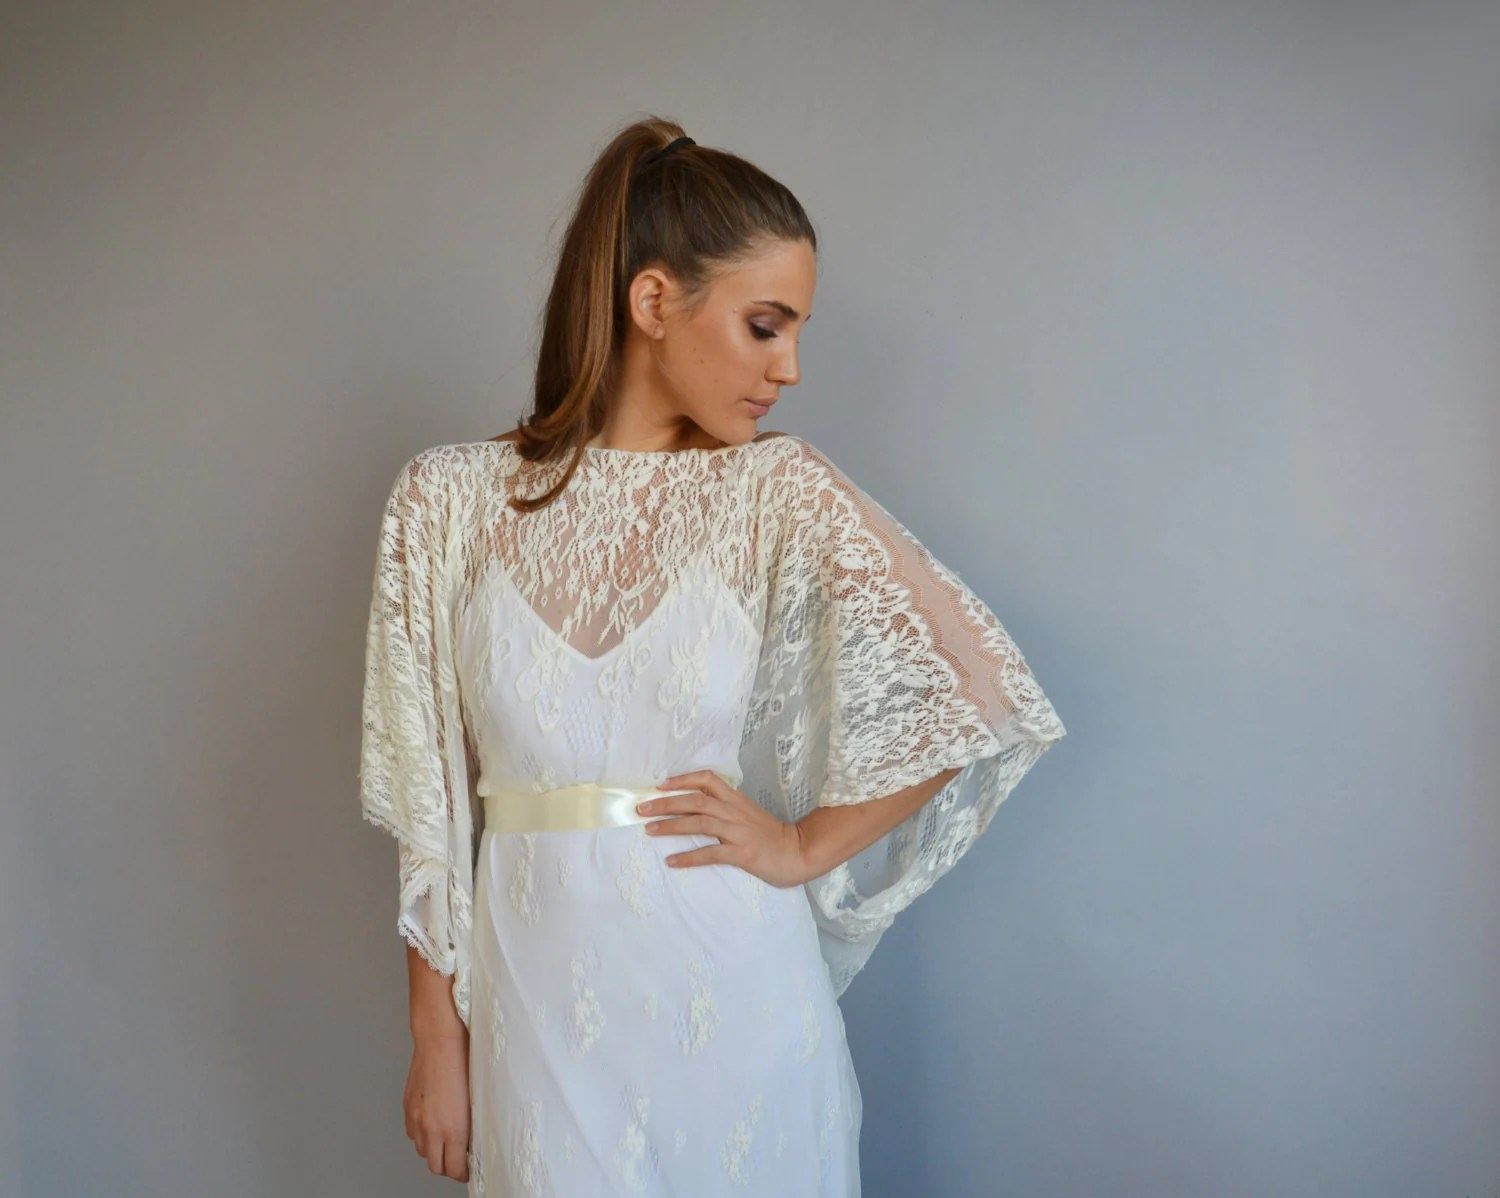 Lace Wedding Dress Kimono Sleeves Wedding Dress Wedding Lace